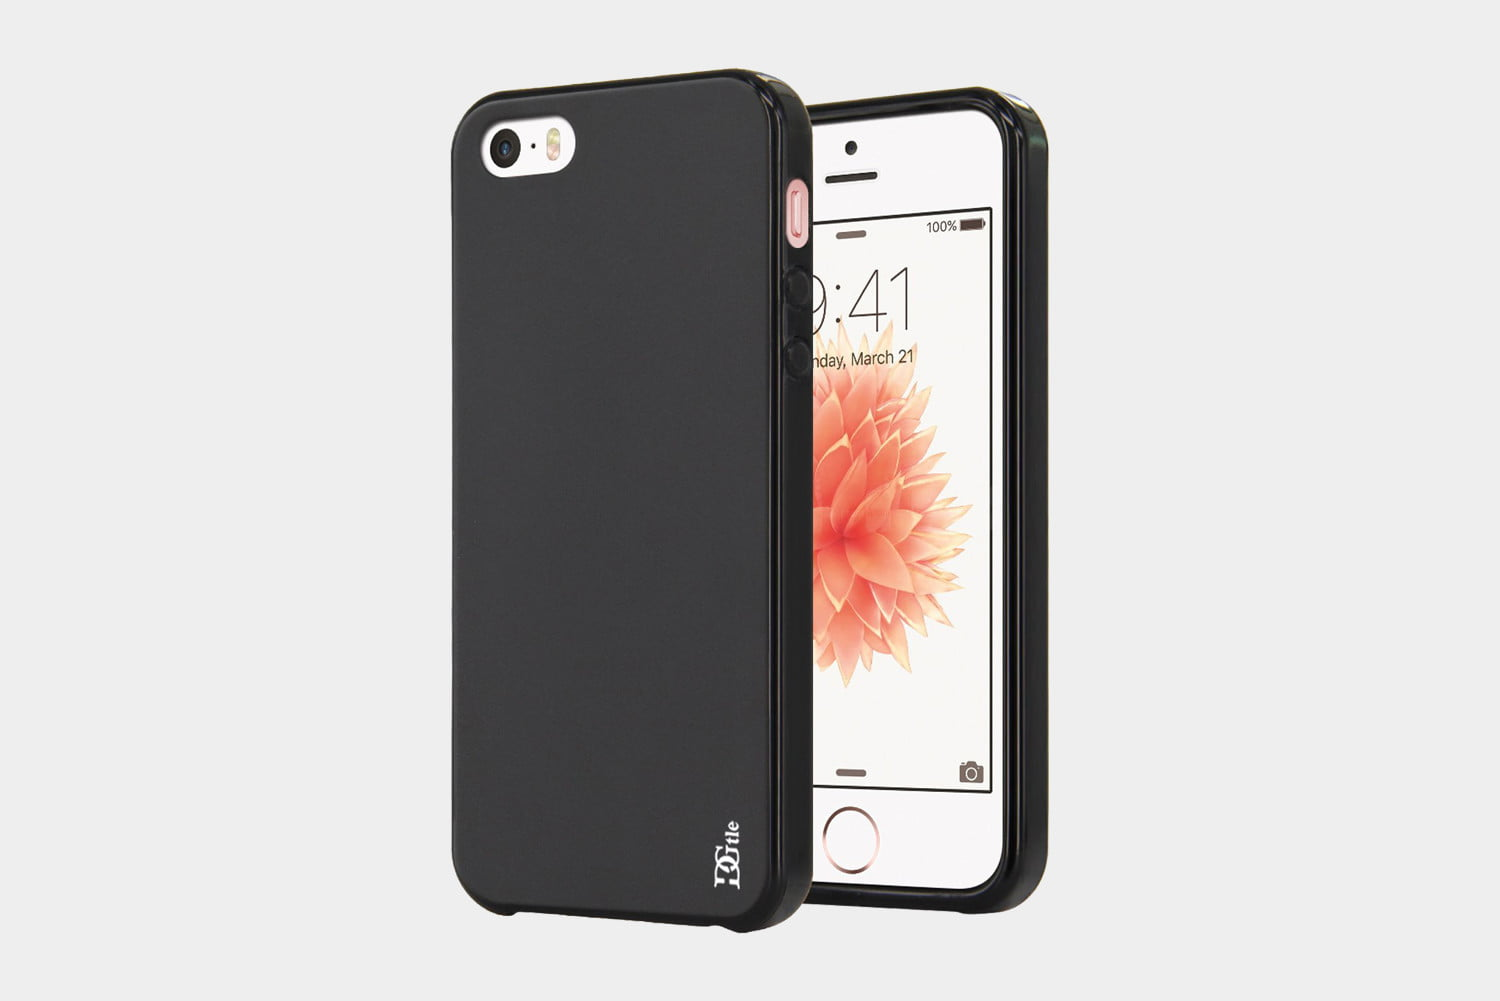 here are the 20 best iphone se cases and covers digital trendsflexishield gel case here\u0027s a simple gel case that\u0027s super easy to fit on your iphone se